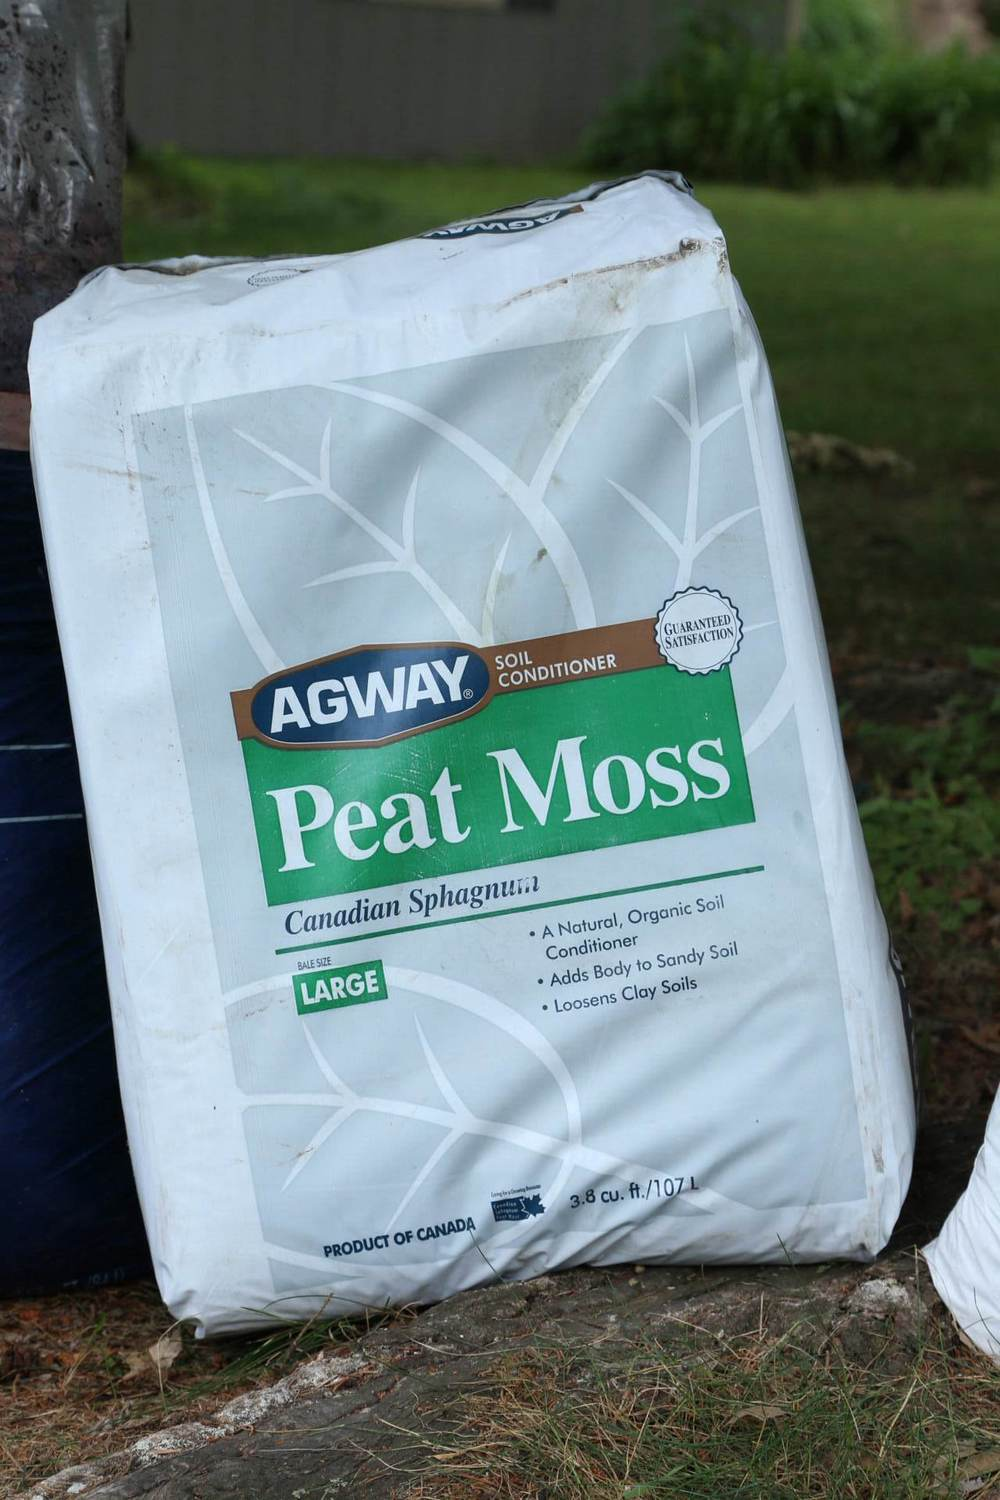 Bale of peat moss. You can most certainly get a smaller amount if only doing a single batch or two.